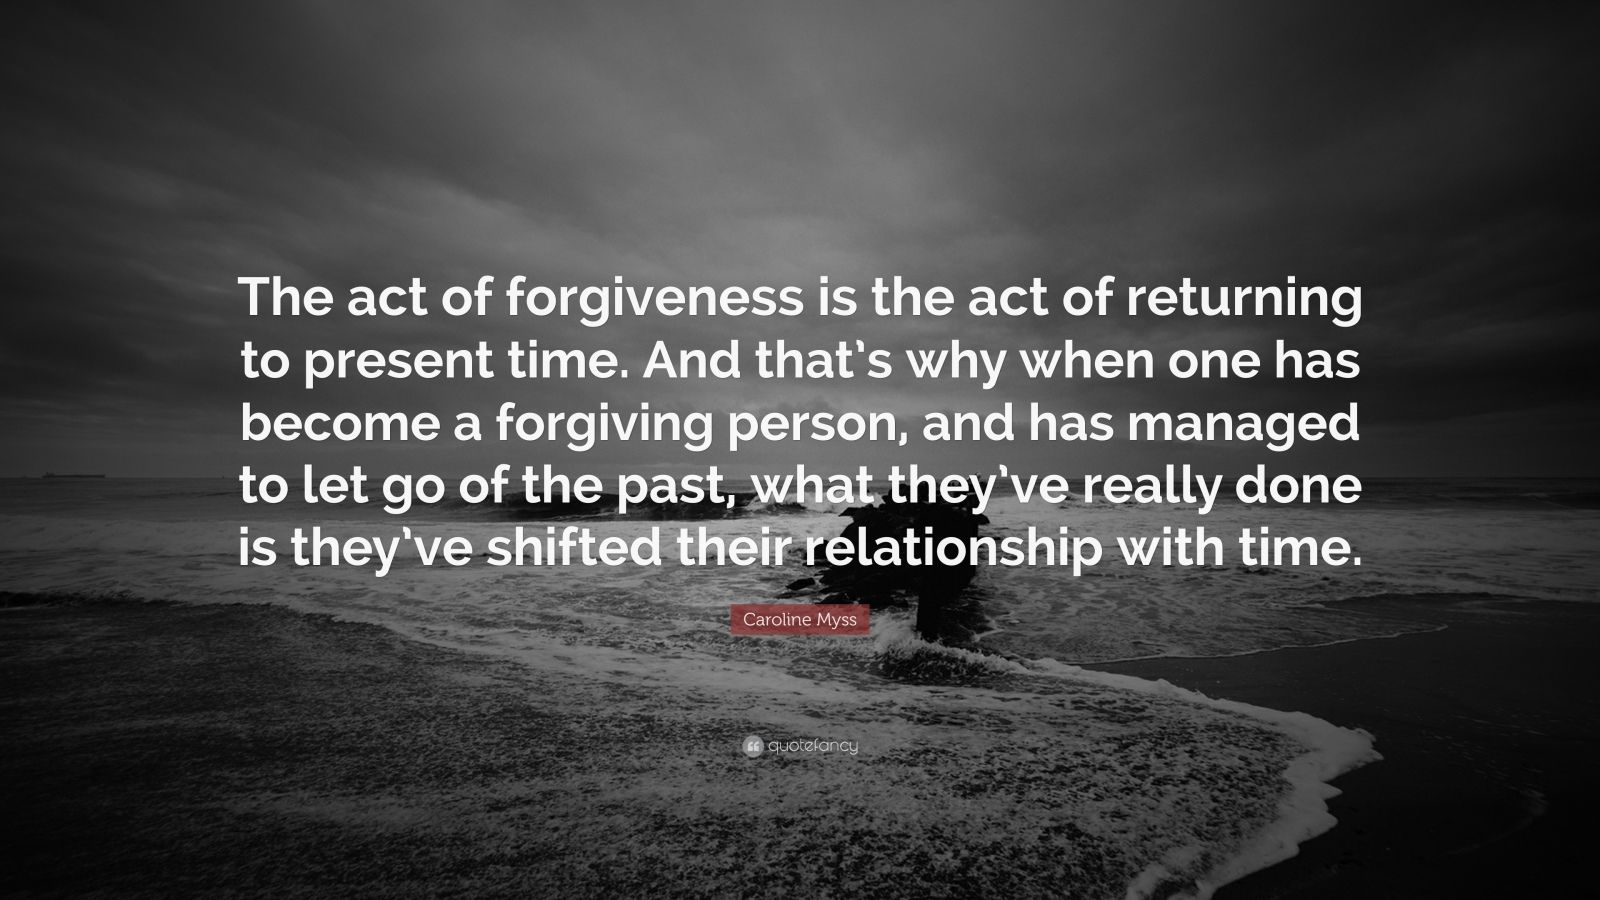 "Caroline Myss Quote: ""The act of forgiveness is the act of returning to present time. And that's why when one has become a forgiving person, and has managed to let go of the past, what they've really done is they've shifted their relationship with time."""